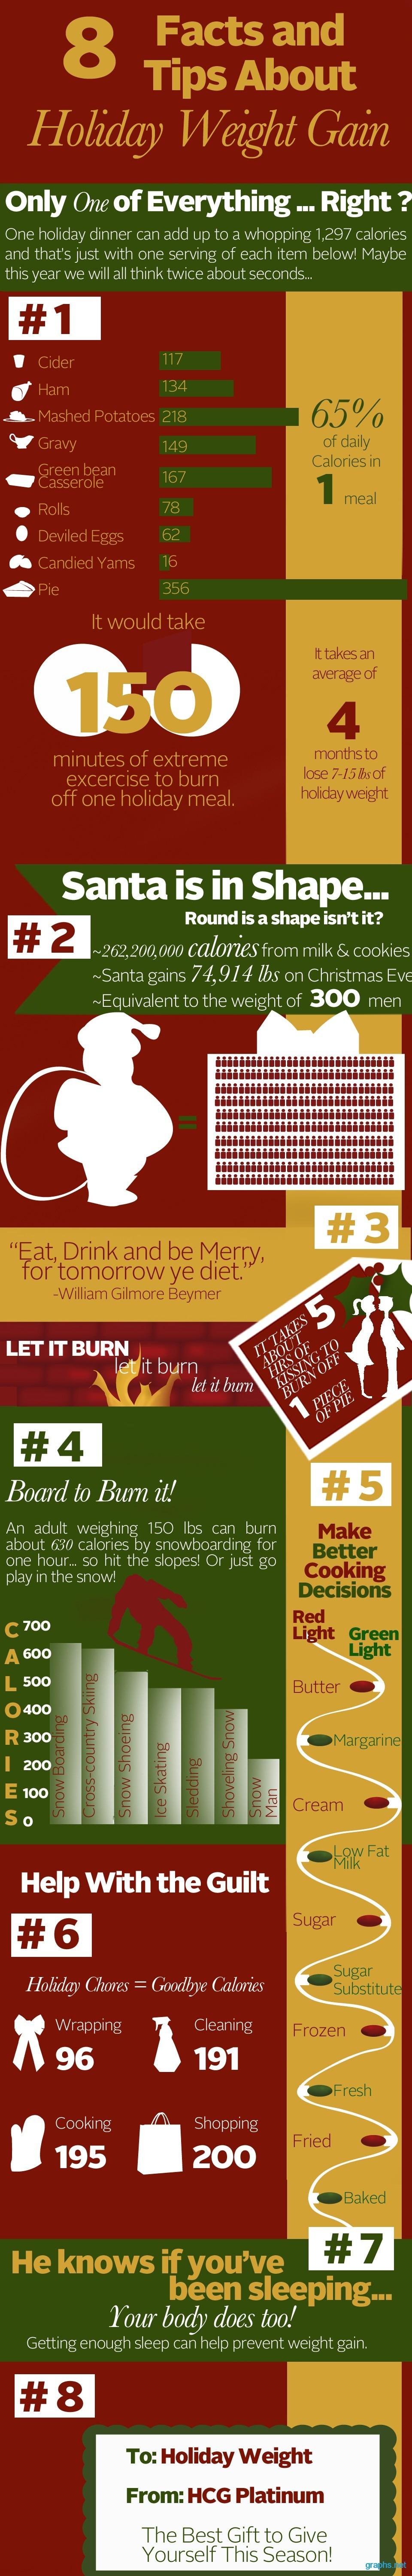 fun facts holiday weight gain